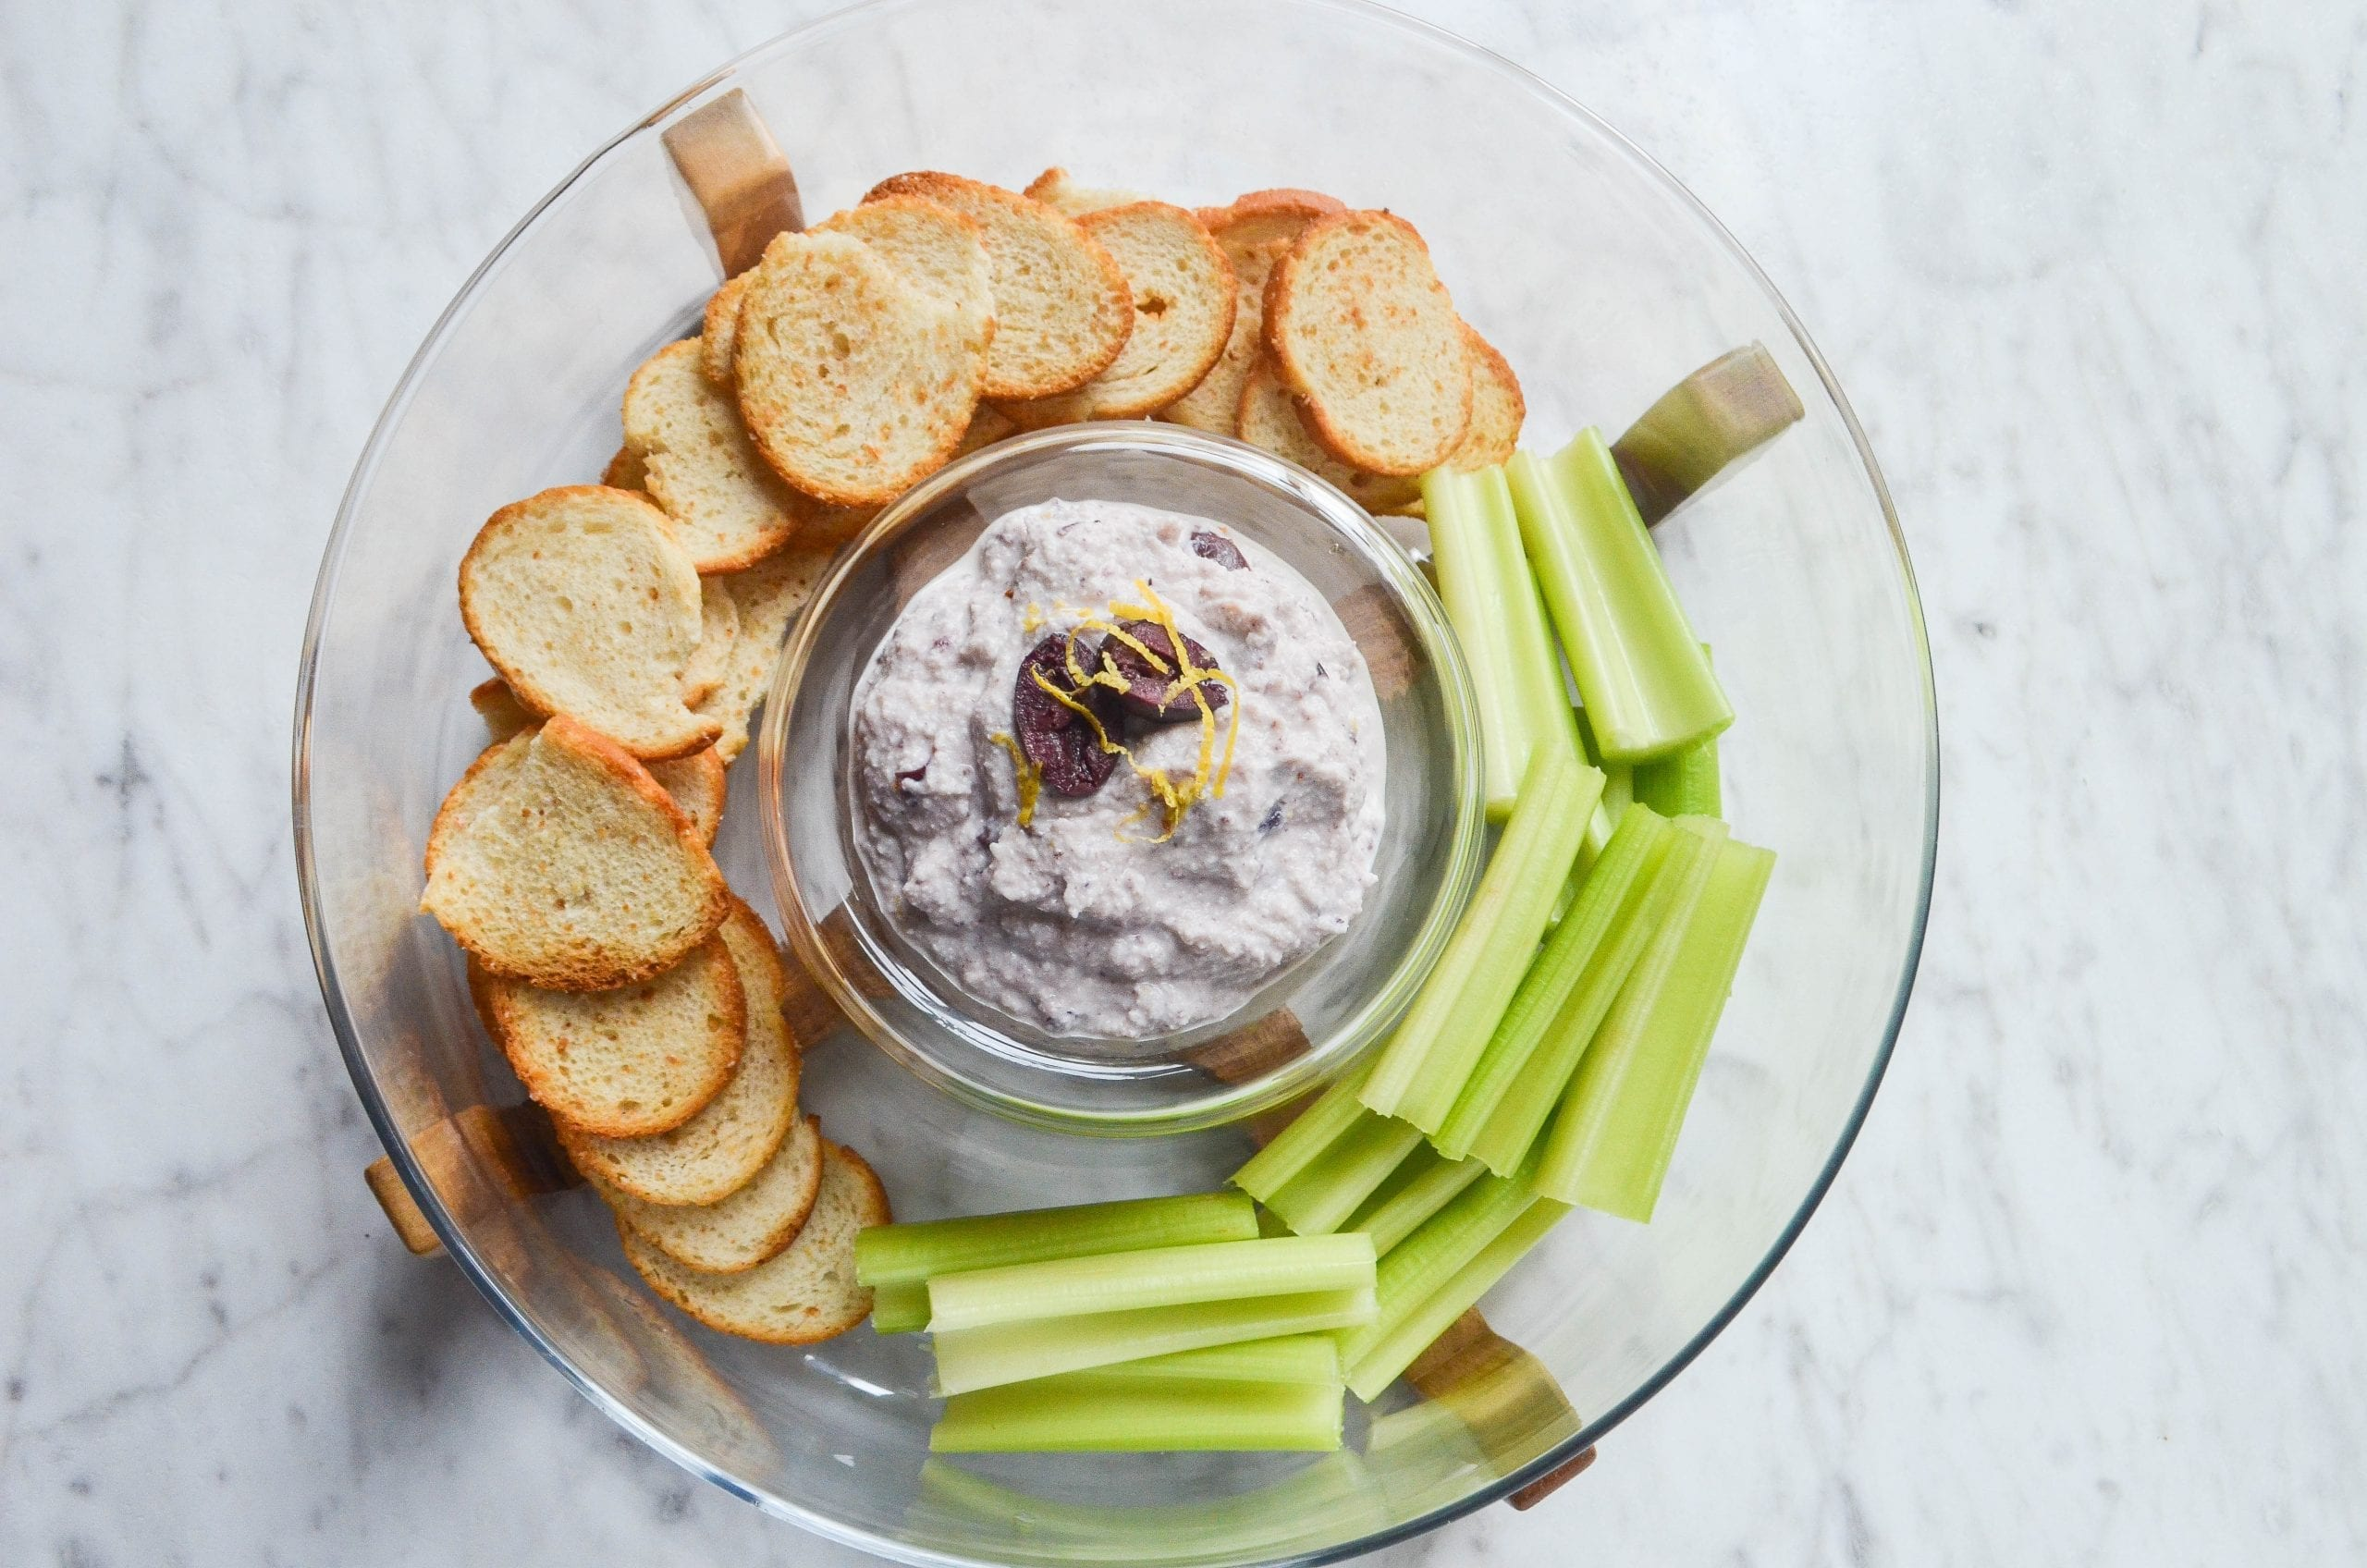 5 Ingredient Olive Ricotta Dip